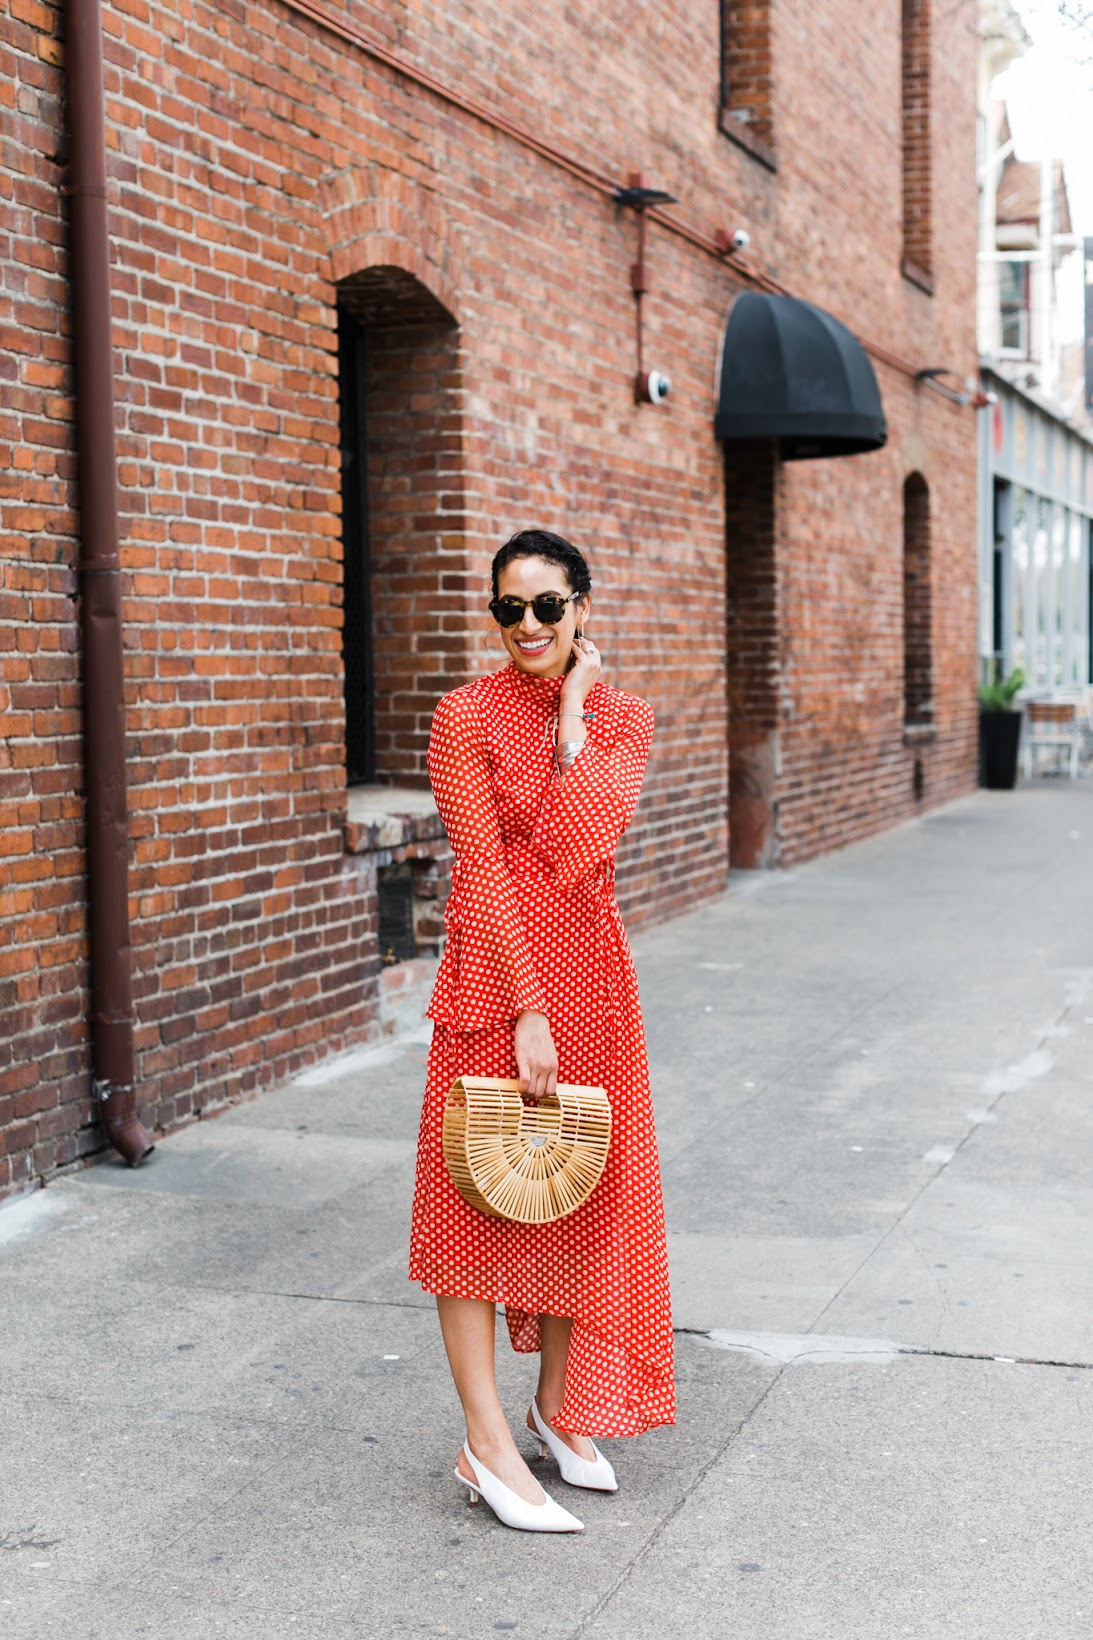 red polka dots, boohoo dress, best polka dot dress under $60, white pointy toe pumps, spring style, affordable spring style, chic spring style